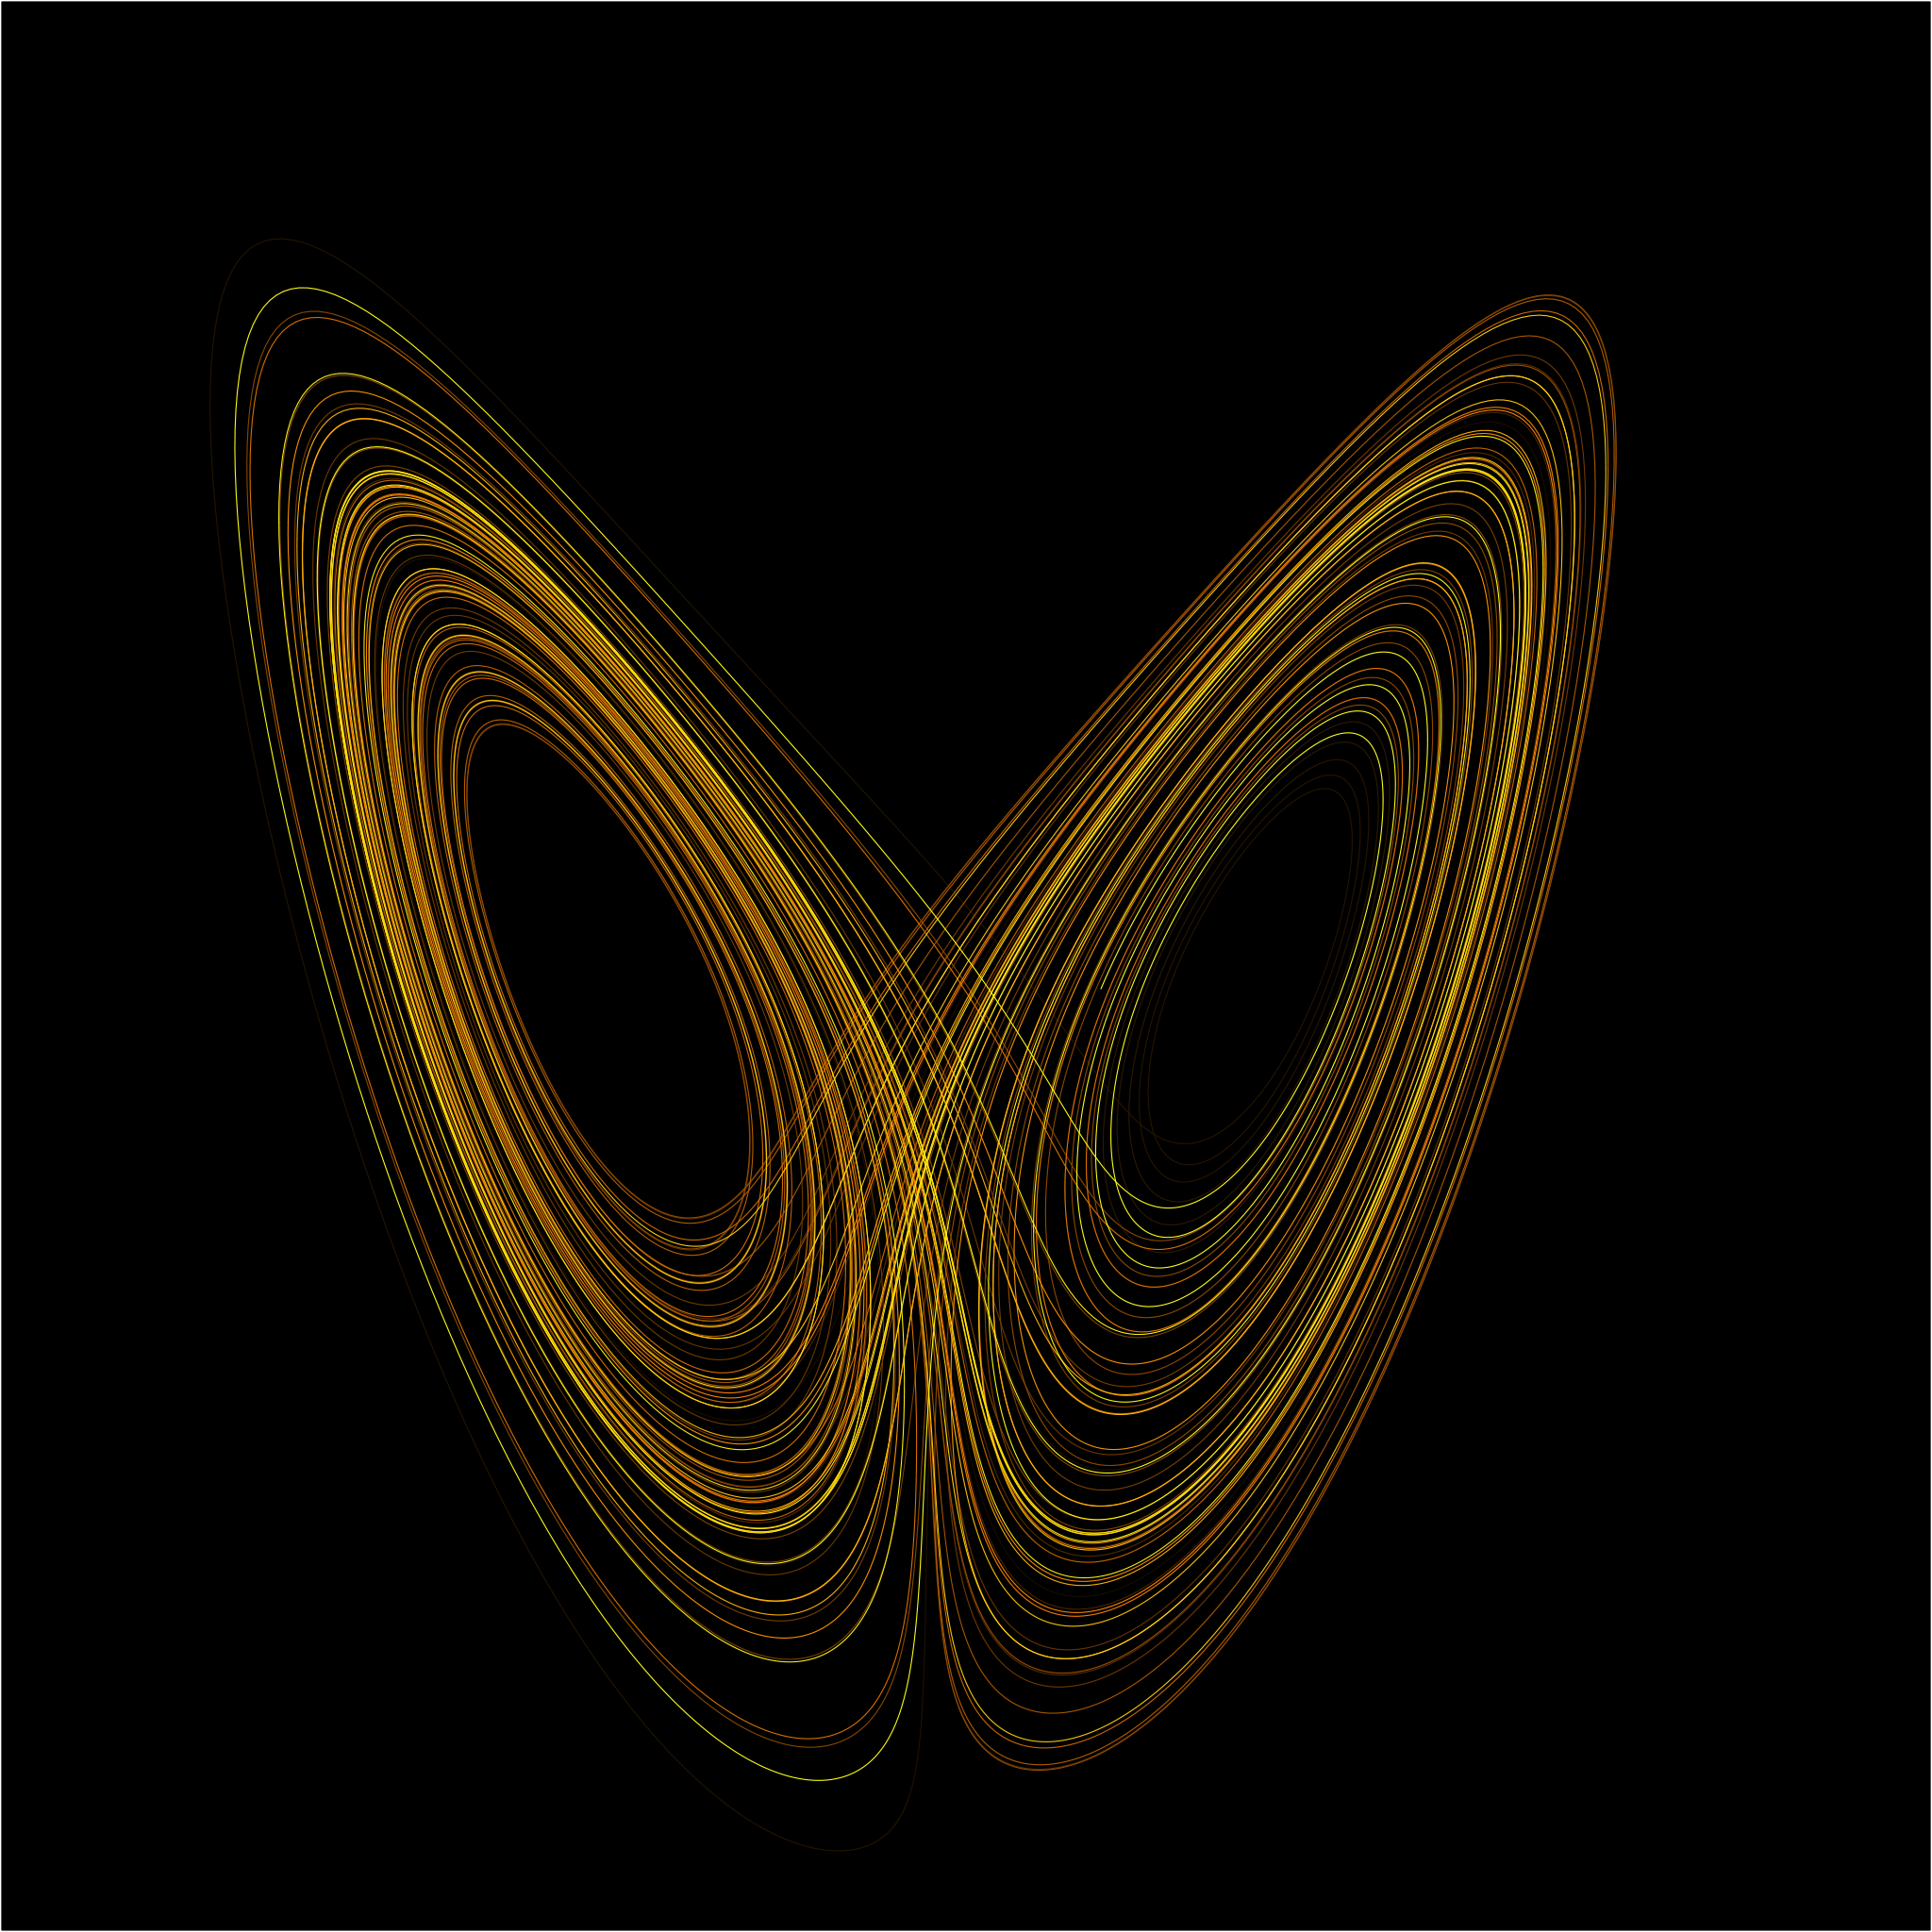 2048px-Lorenz_attractor_yb.svg